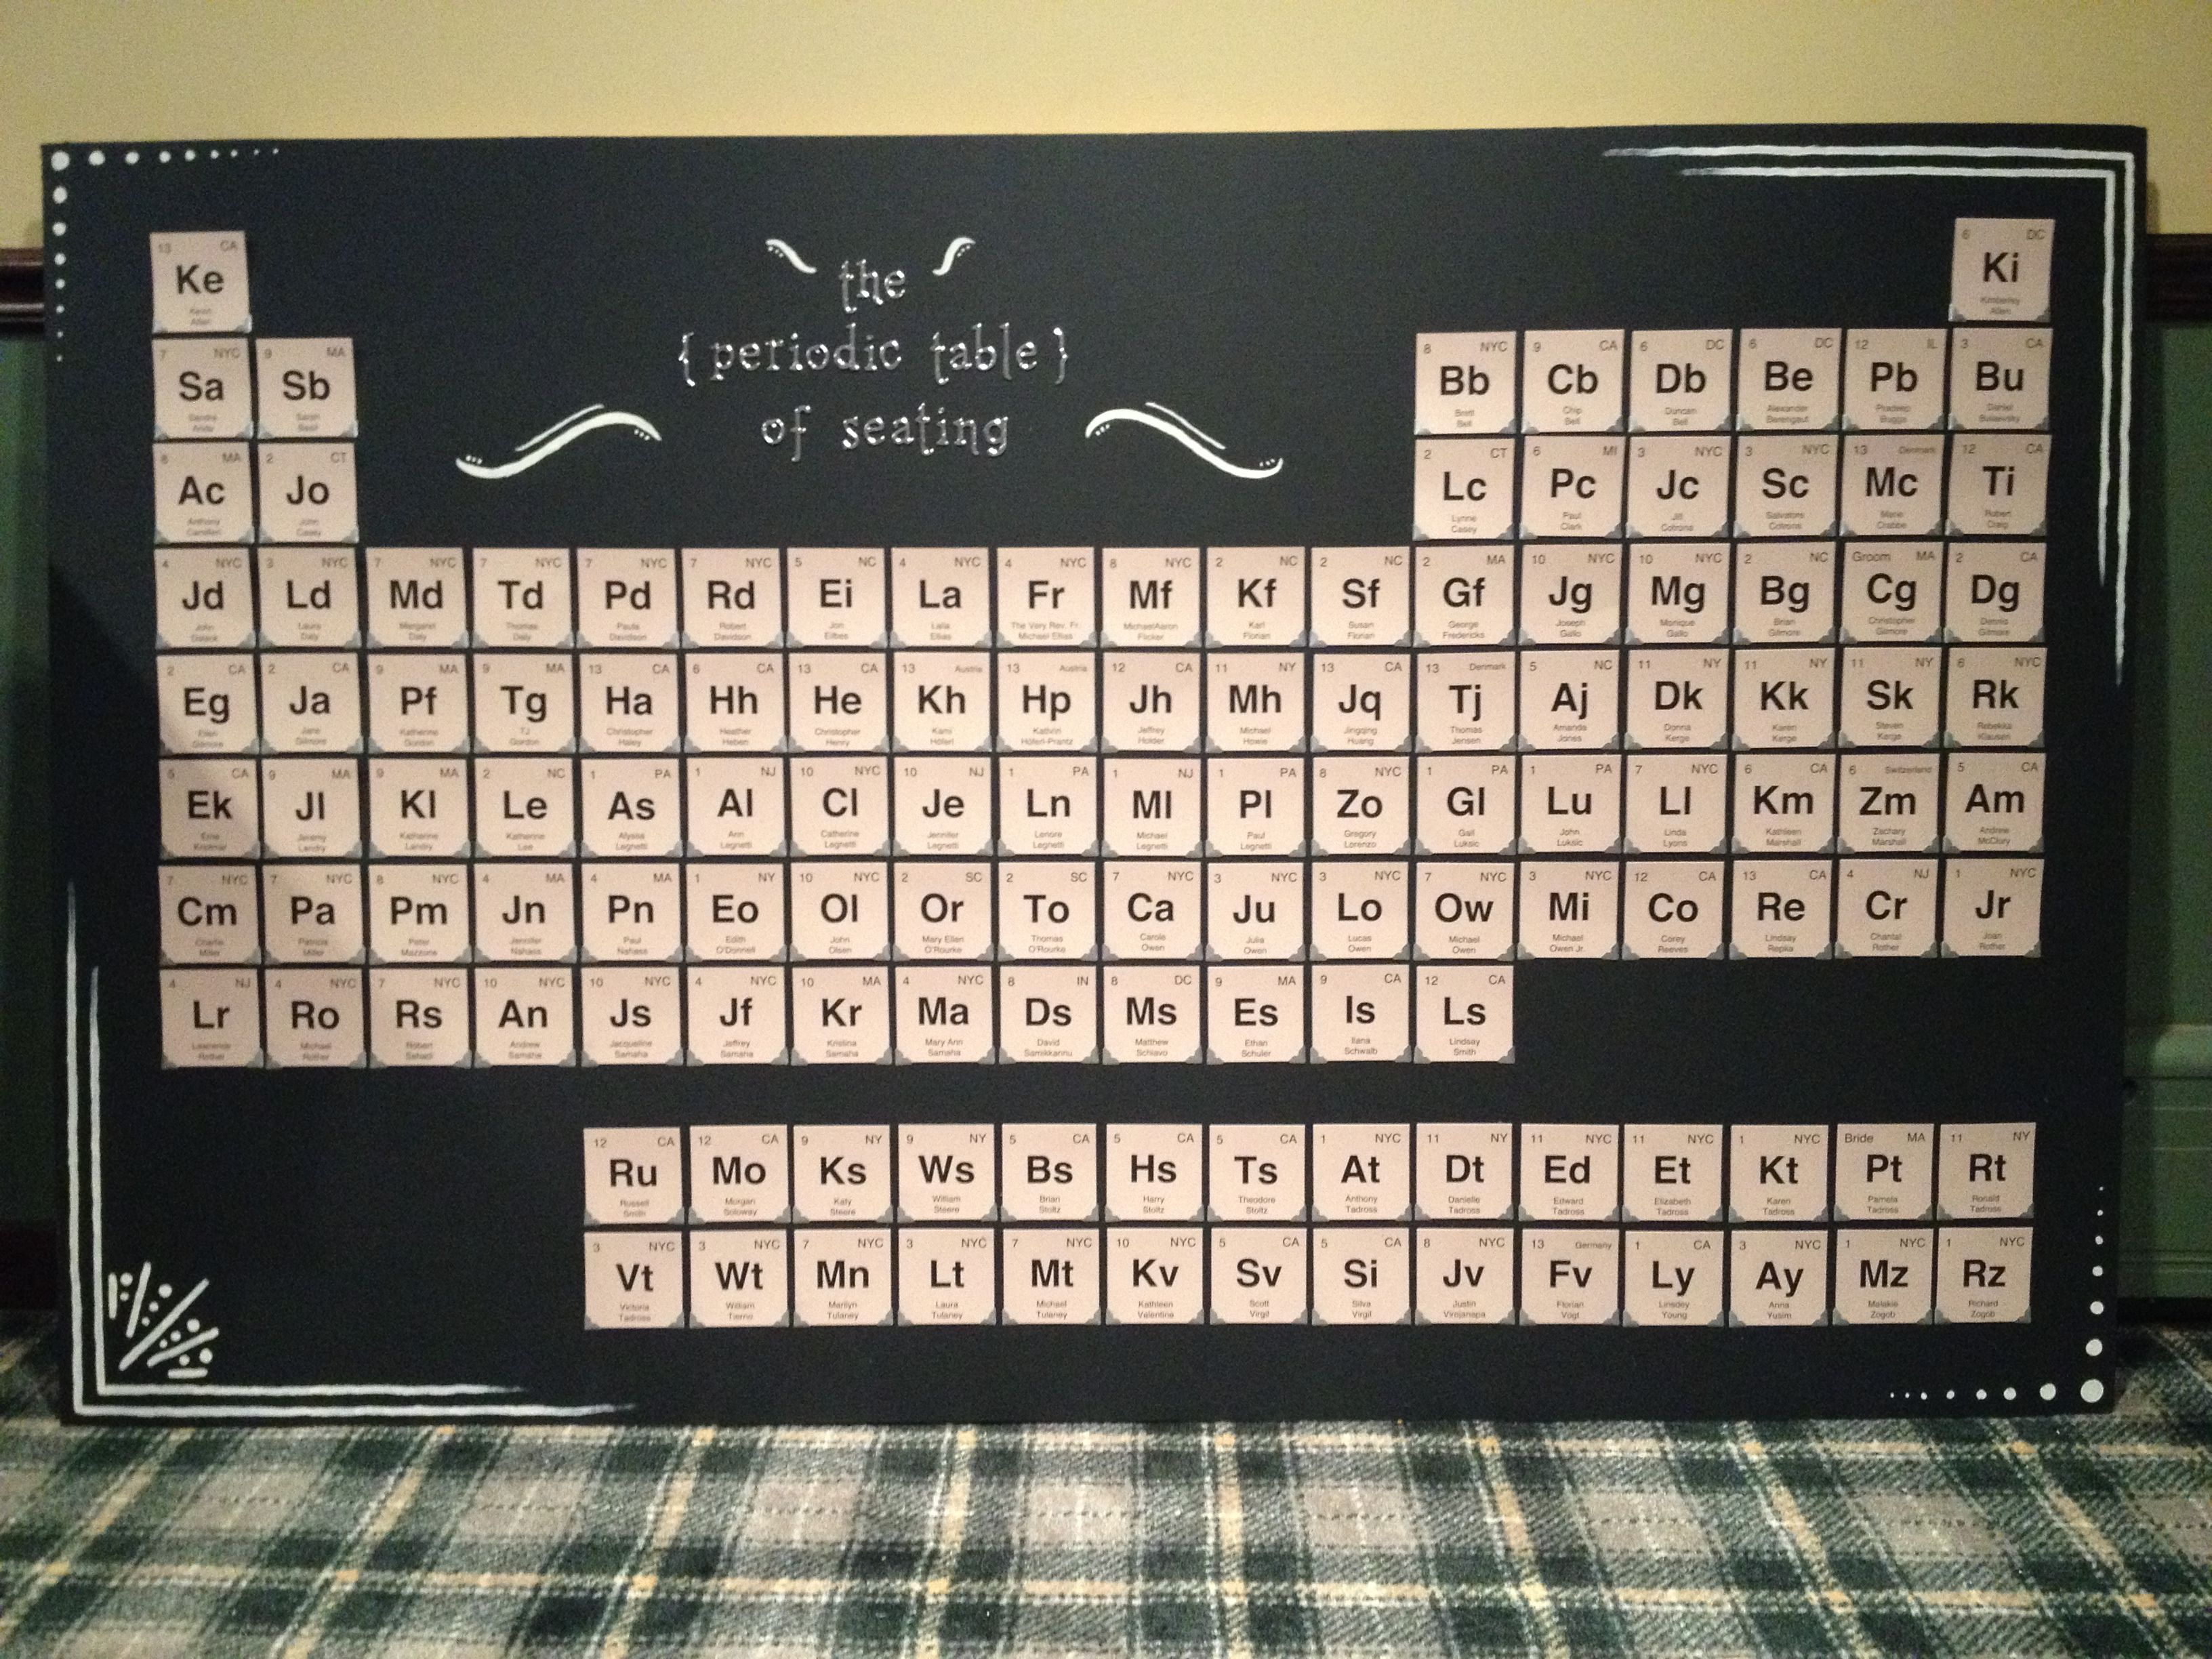 Periodic table of seating nerdy nuptials newscripts 1920s periodic table of seating nerdy nuptials newscripts gamestrikefo Image collections